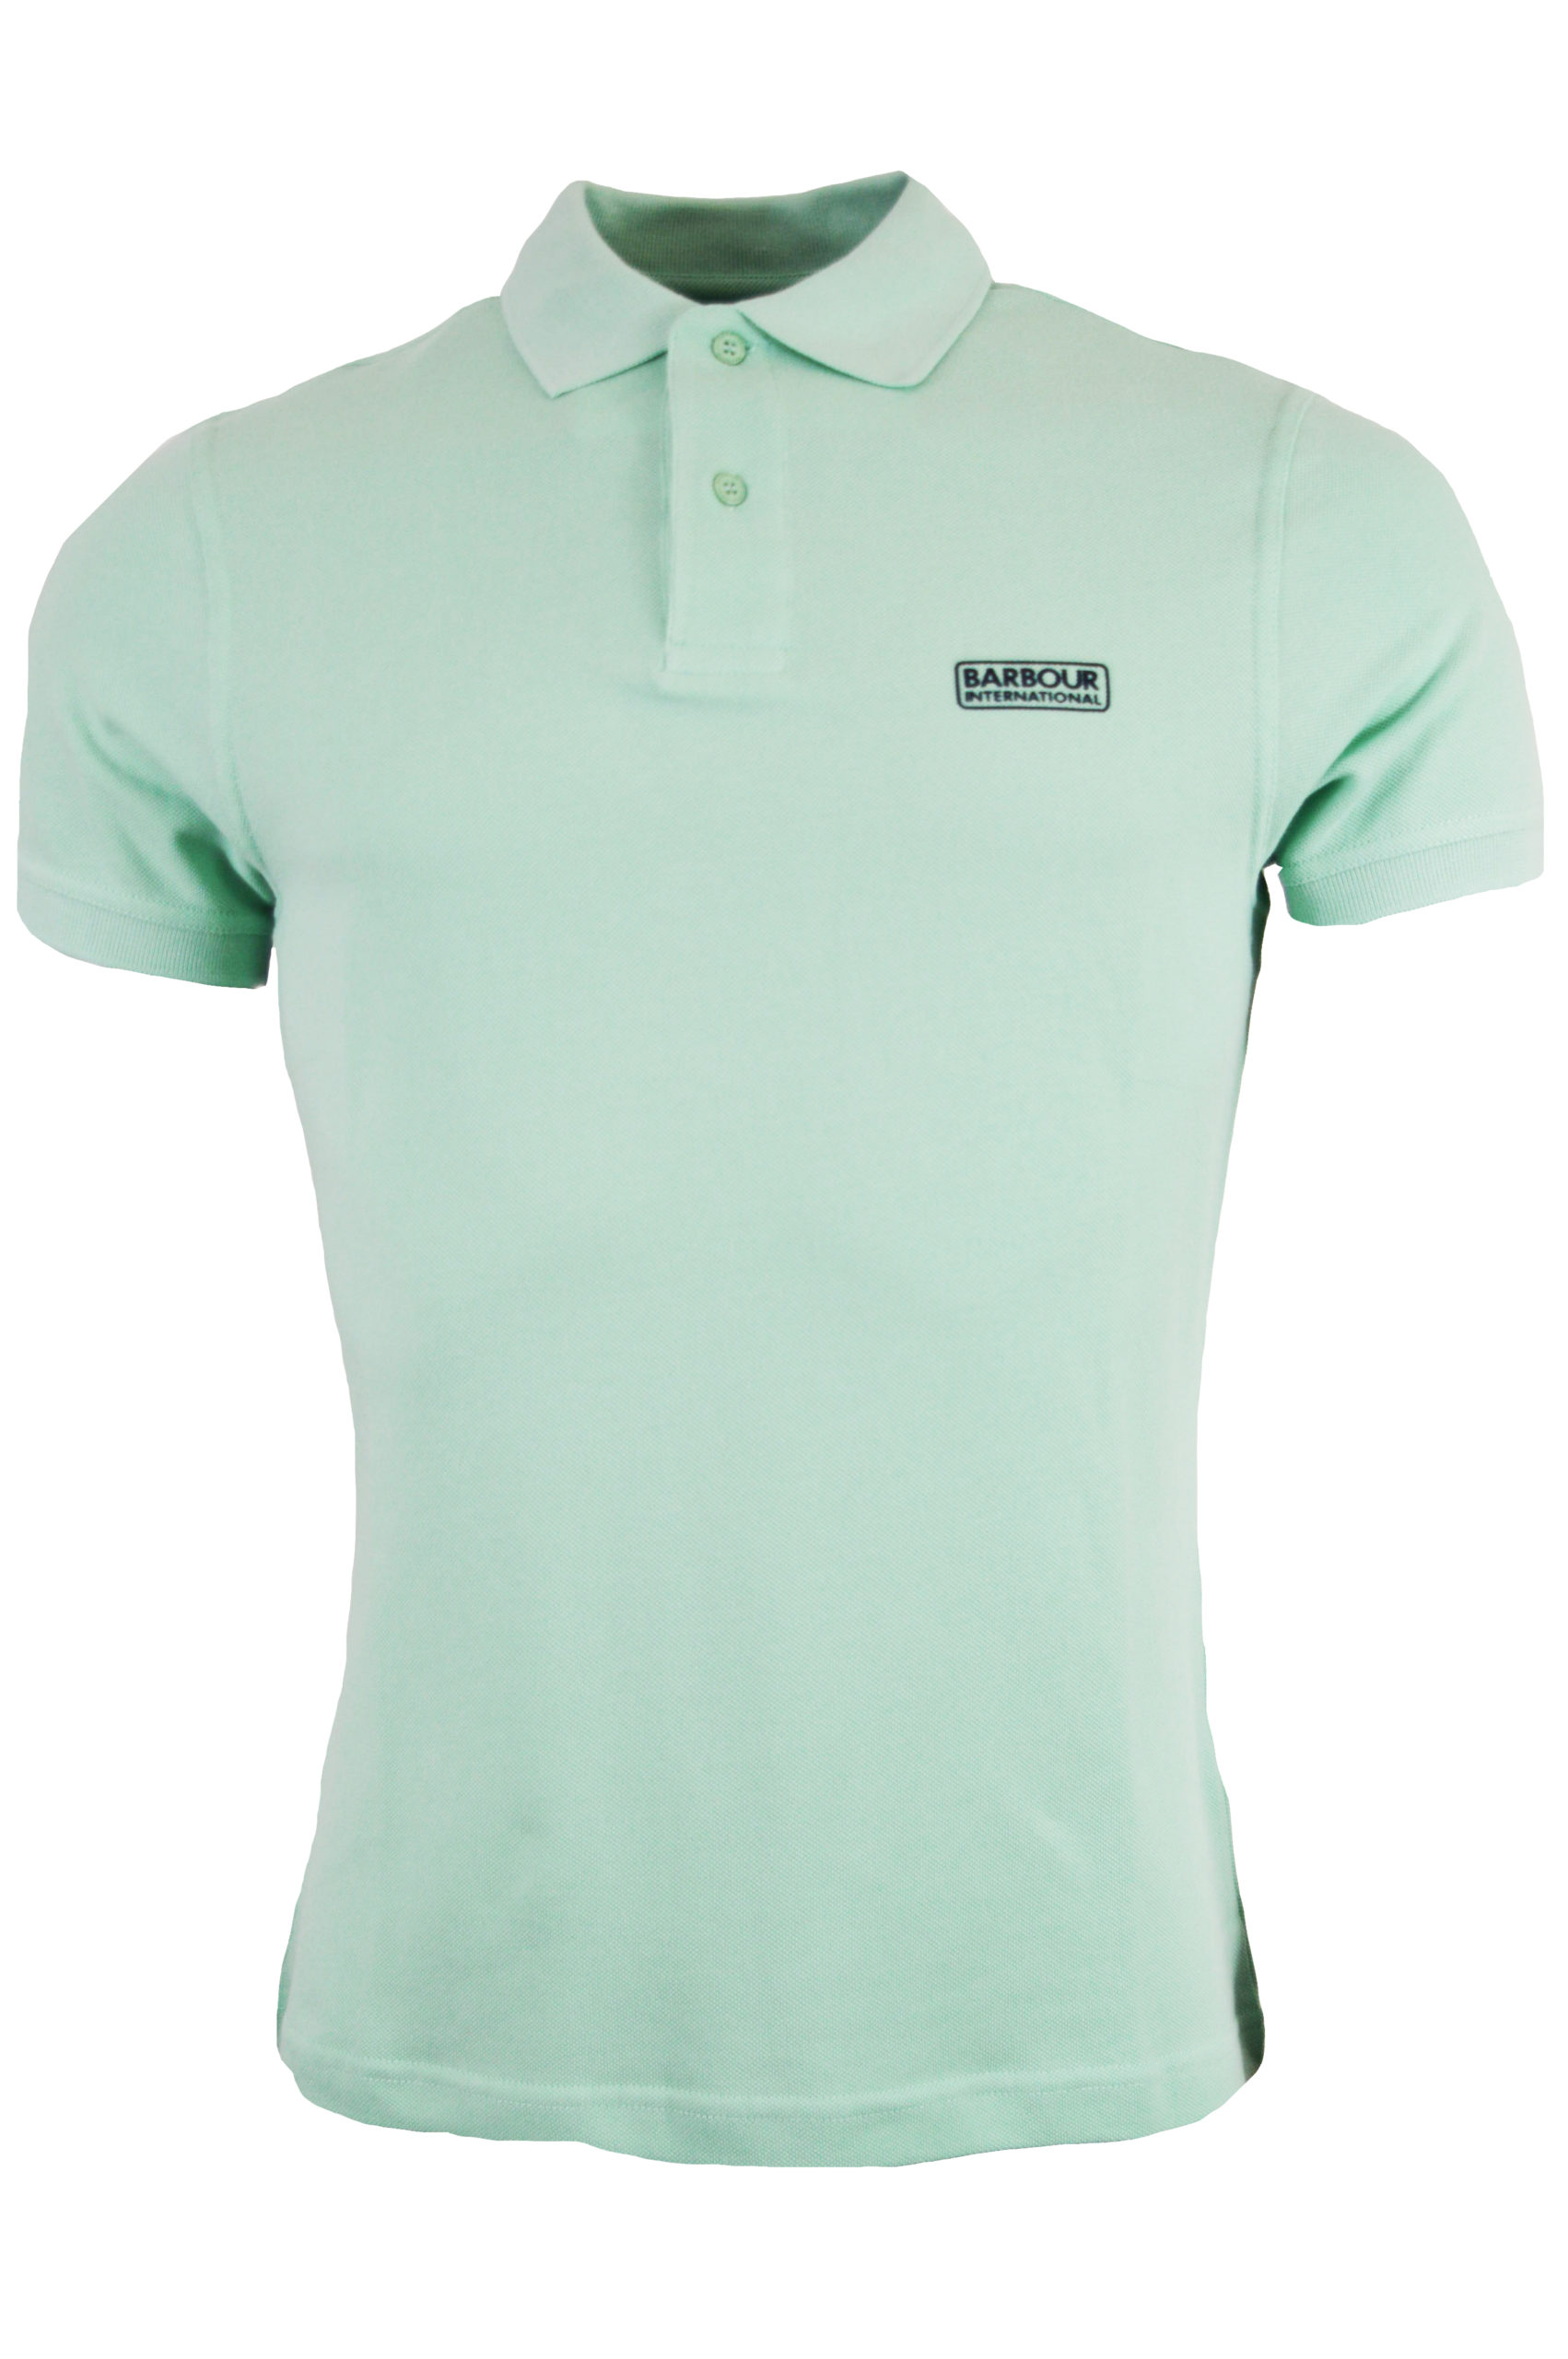 Barbour - Essential Polo - Mint